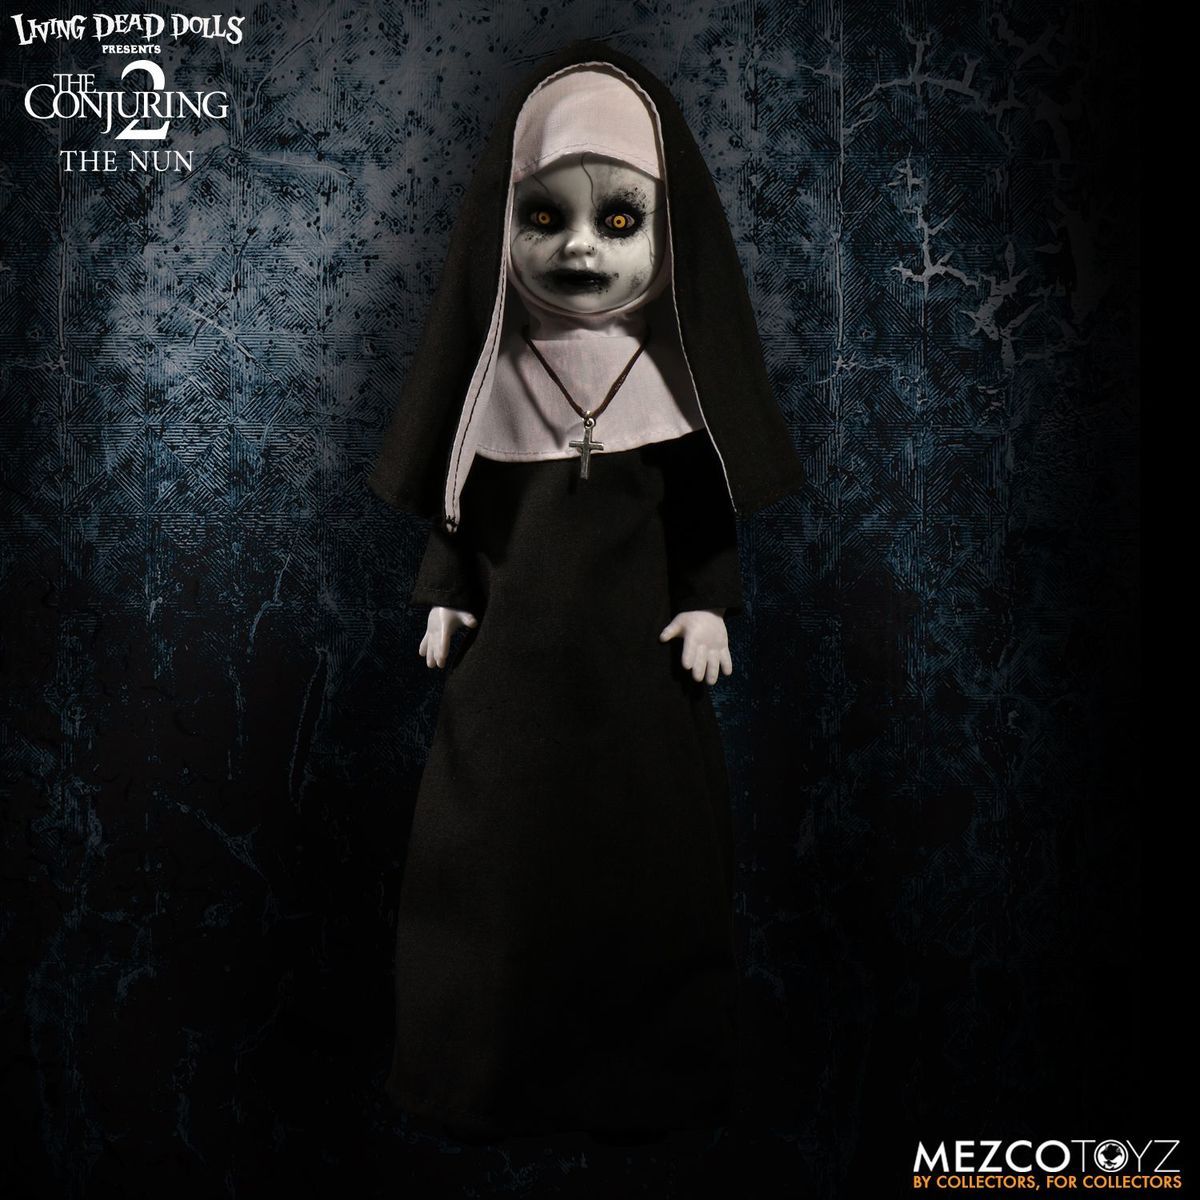 figurka The Nun - The Conjuring - Living Dead Dolls - MEZ99410